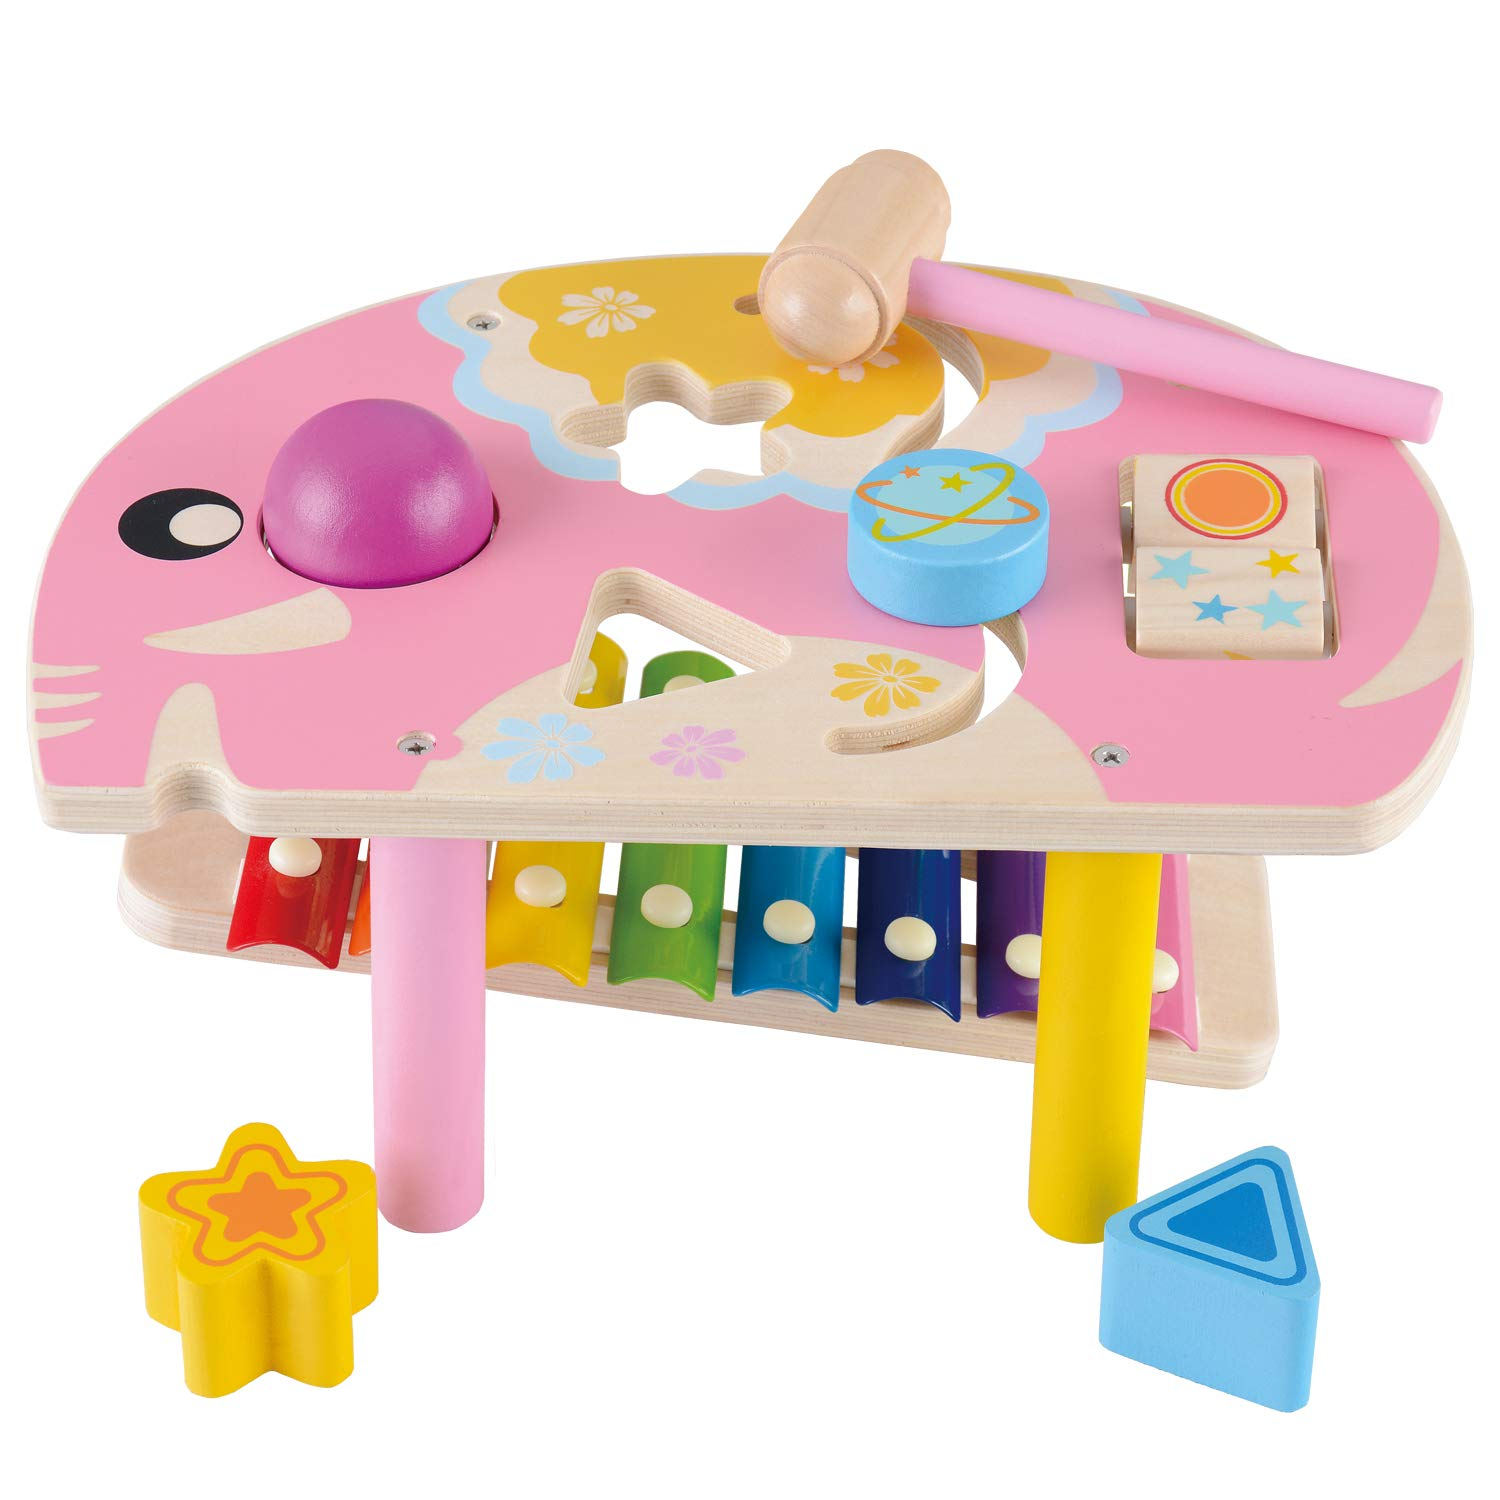 WOOKA Wooden Educational Toys Pound and Tap Bench with Slide Out Xylophone for 1 Year Old and up, Elephant Shape